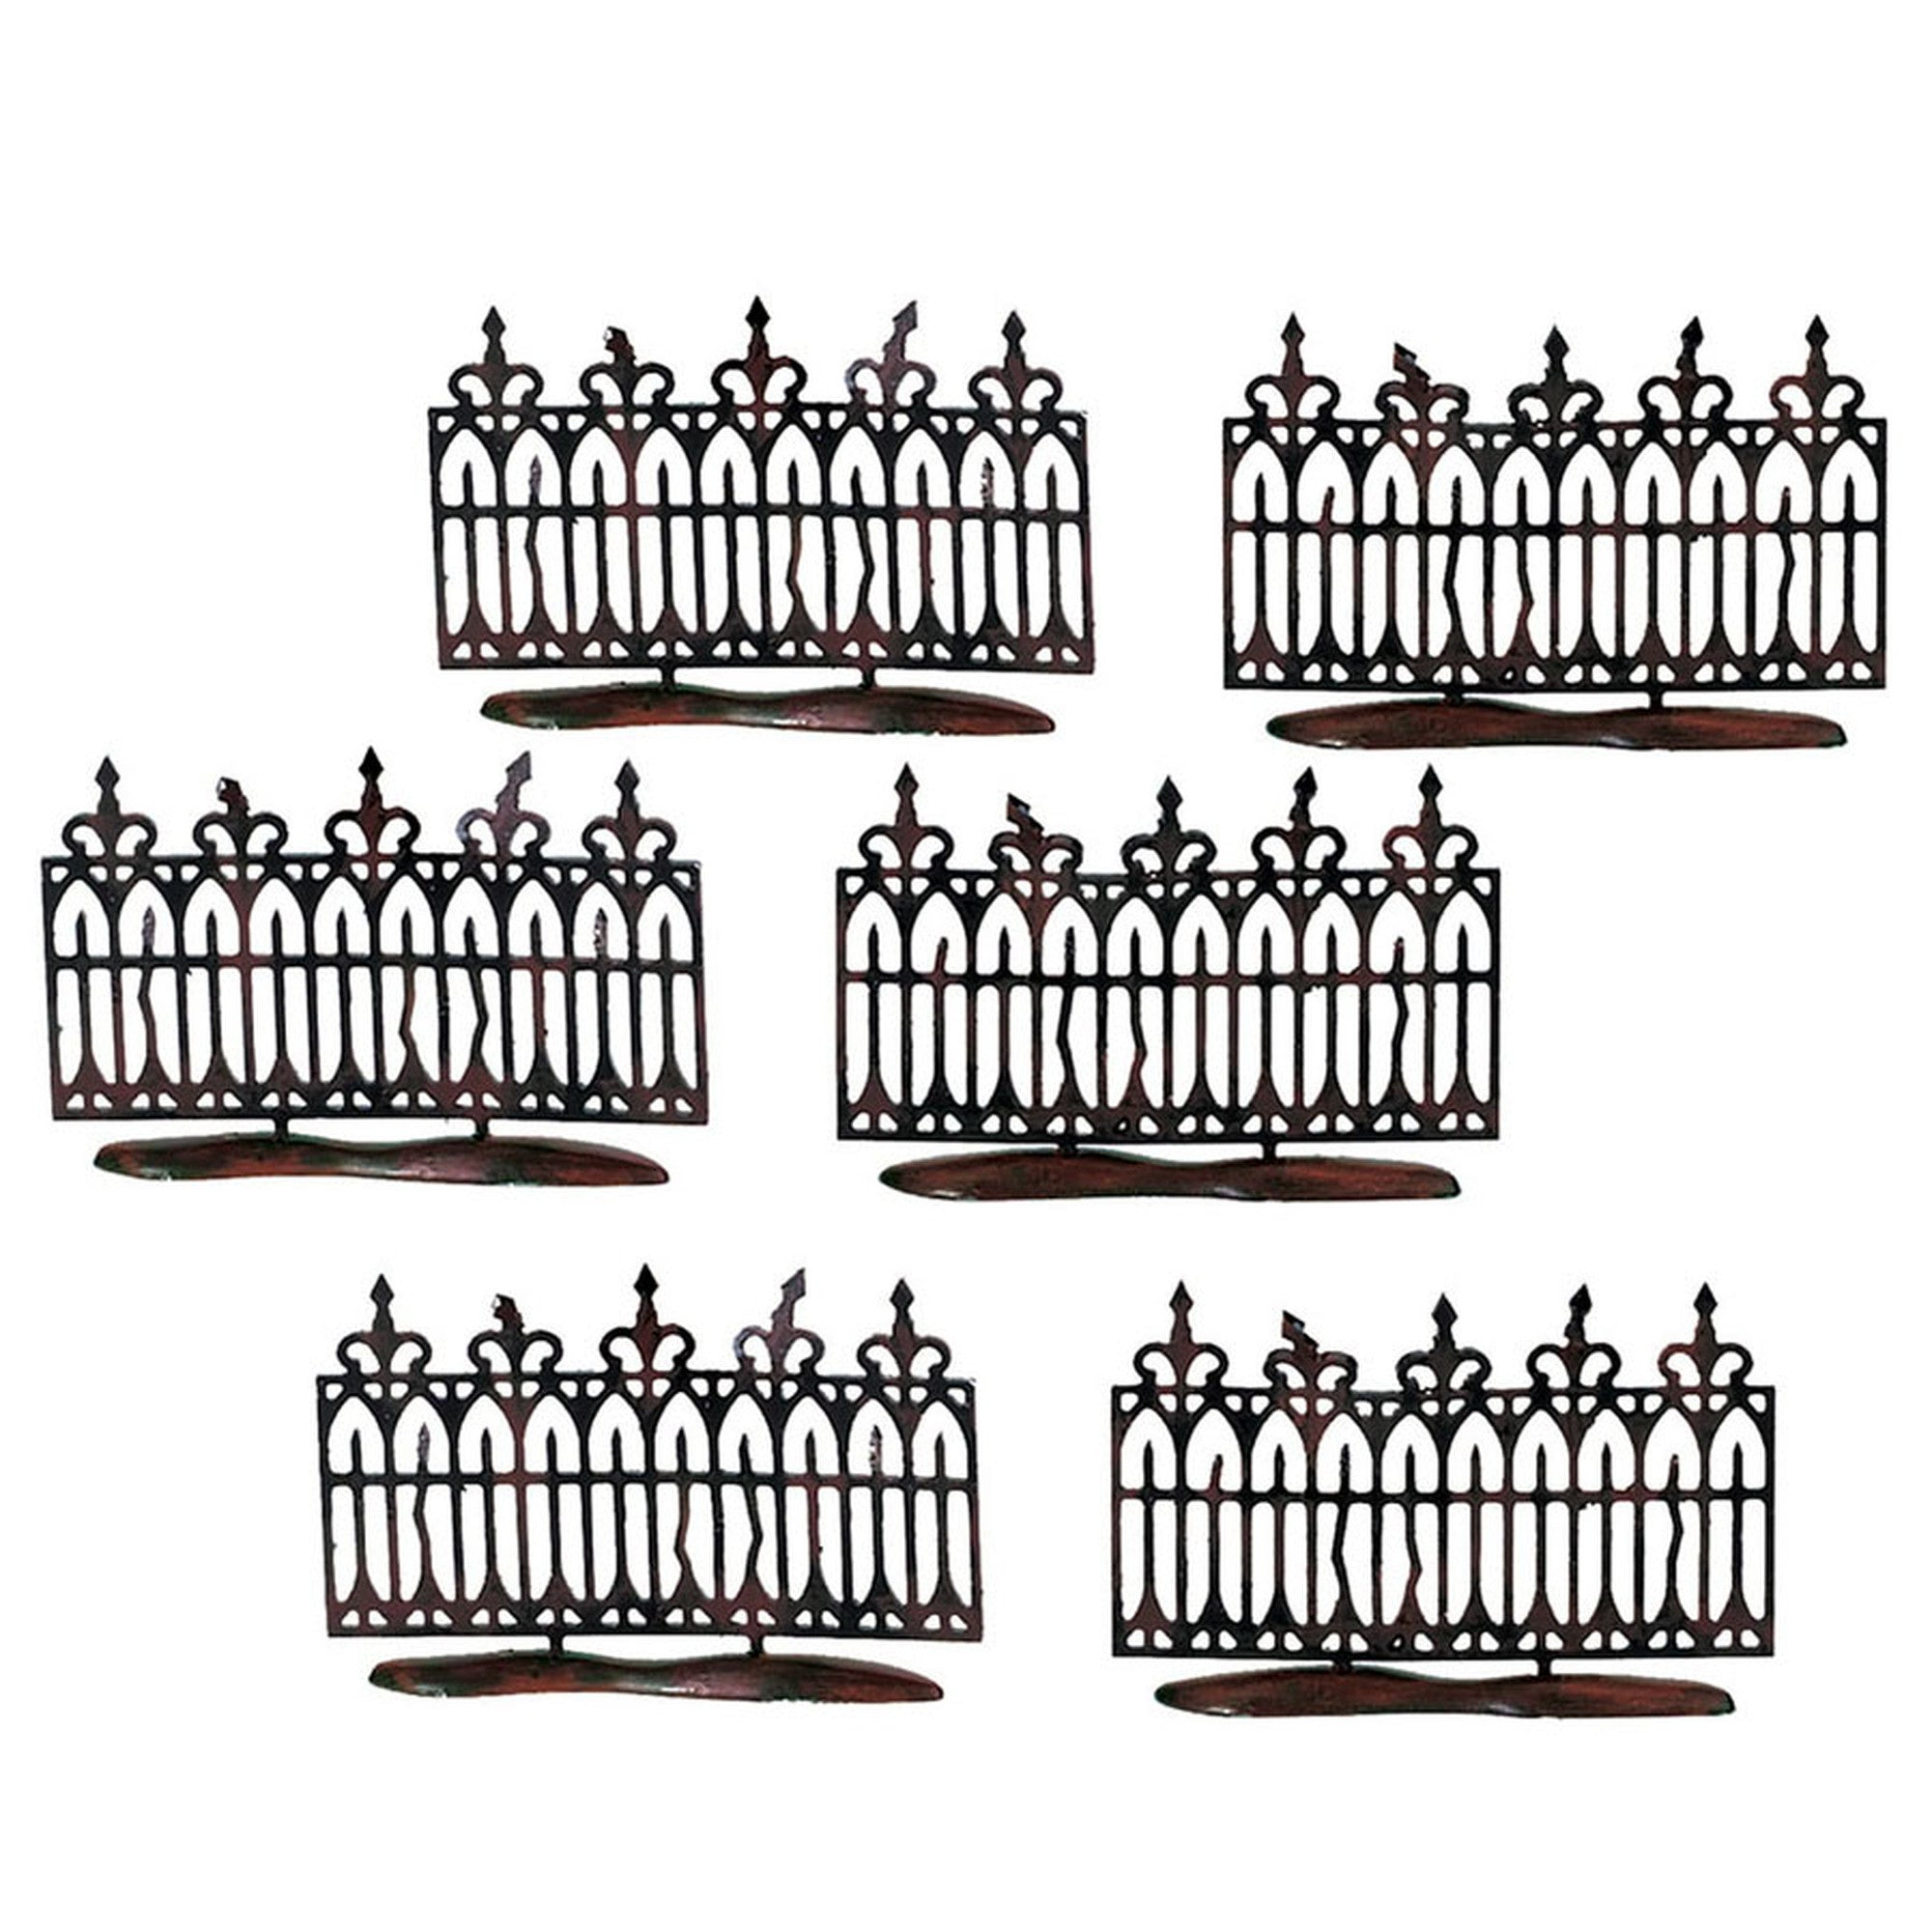 Spooky Wrought Iron Fence - Halloween Village Accessories